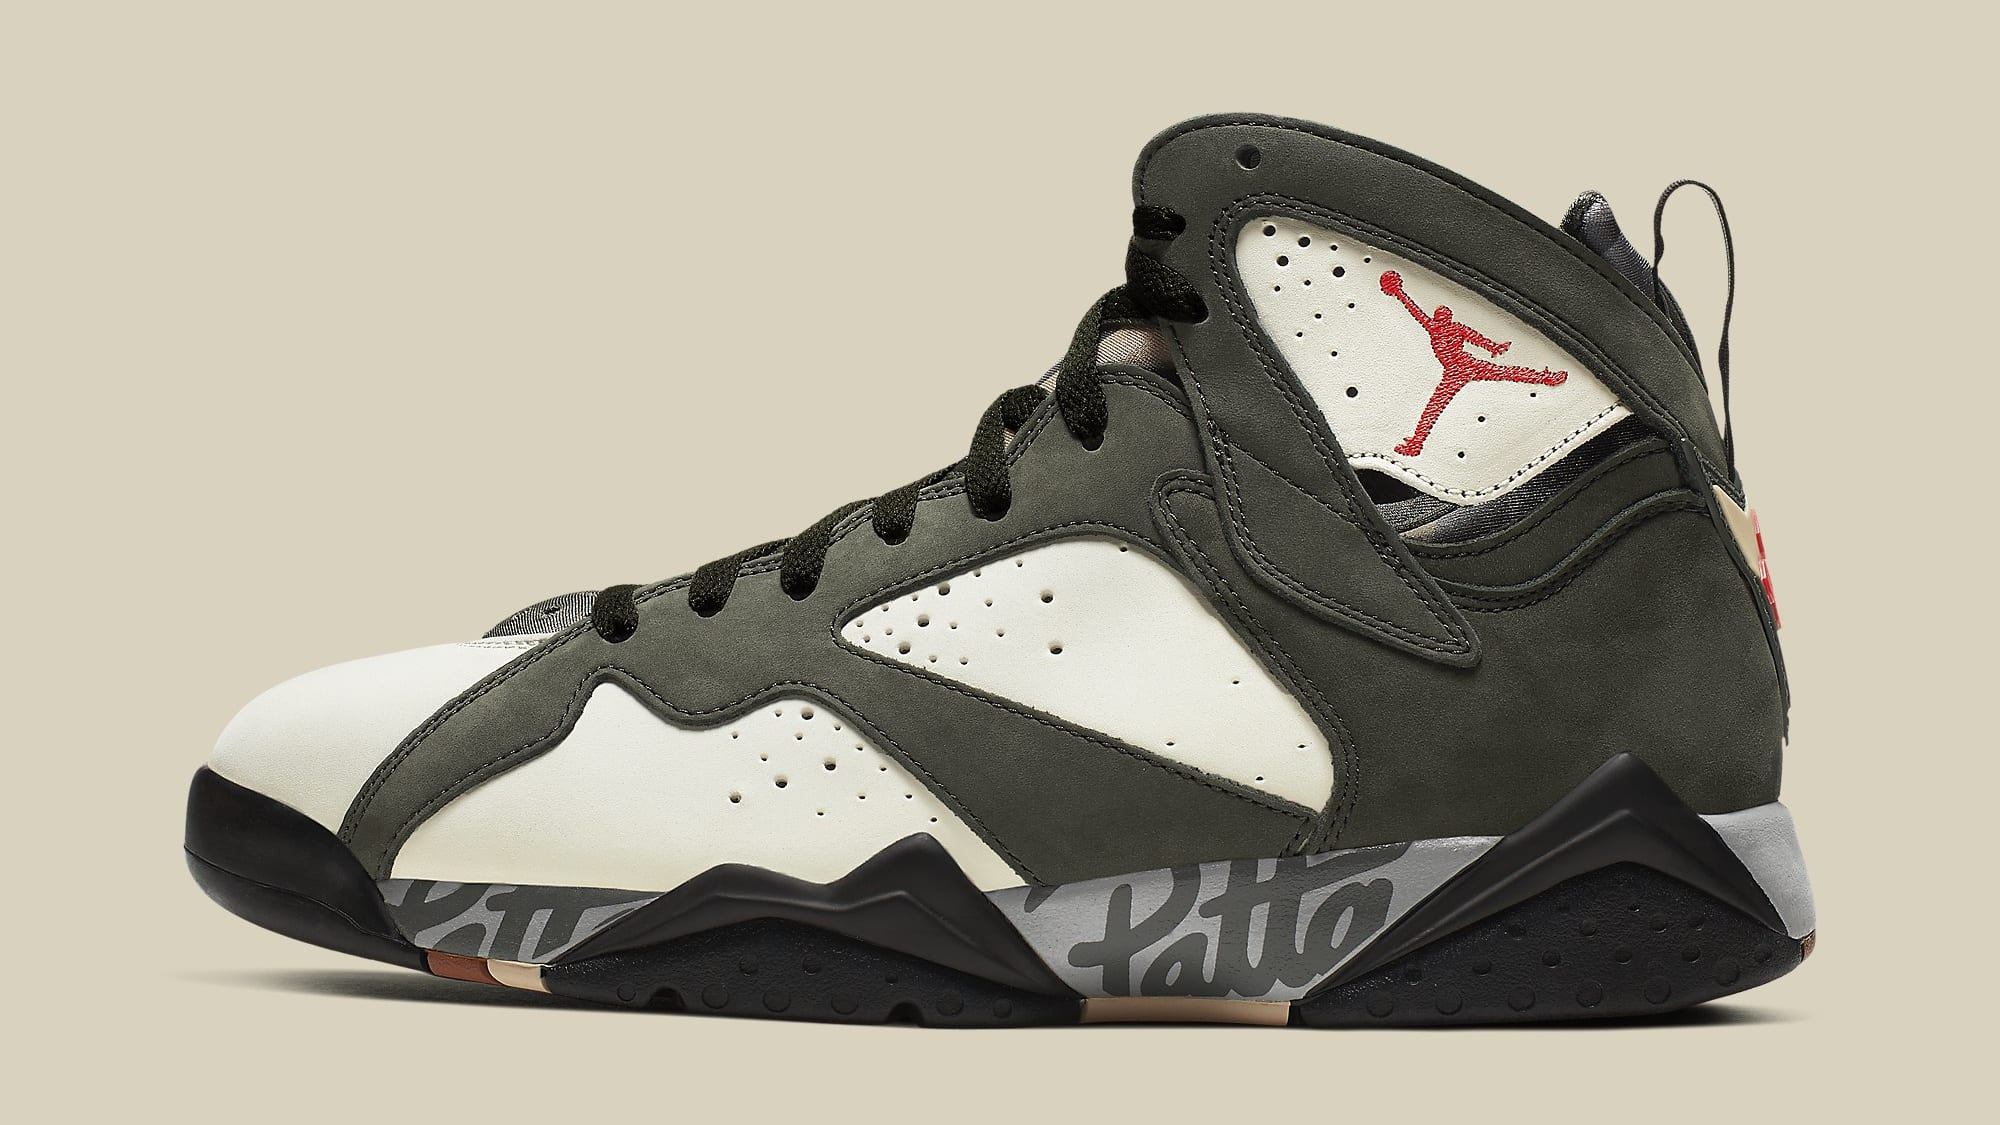 Patta x Air Jordan 7 VII Icicle Release Date AT3375-100 Profile